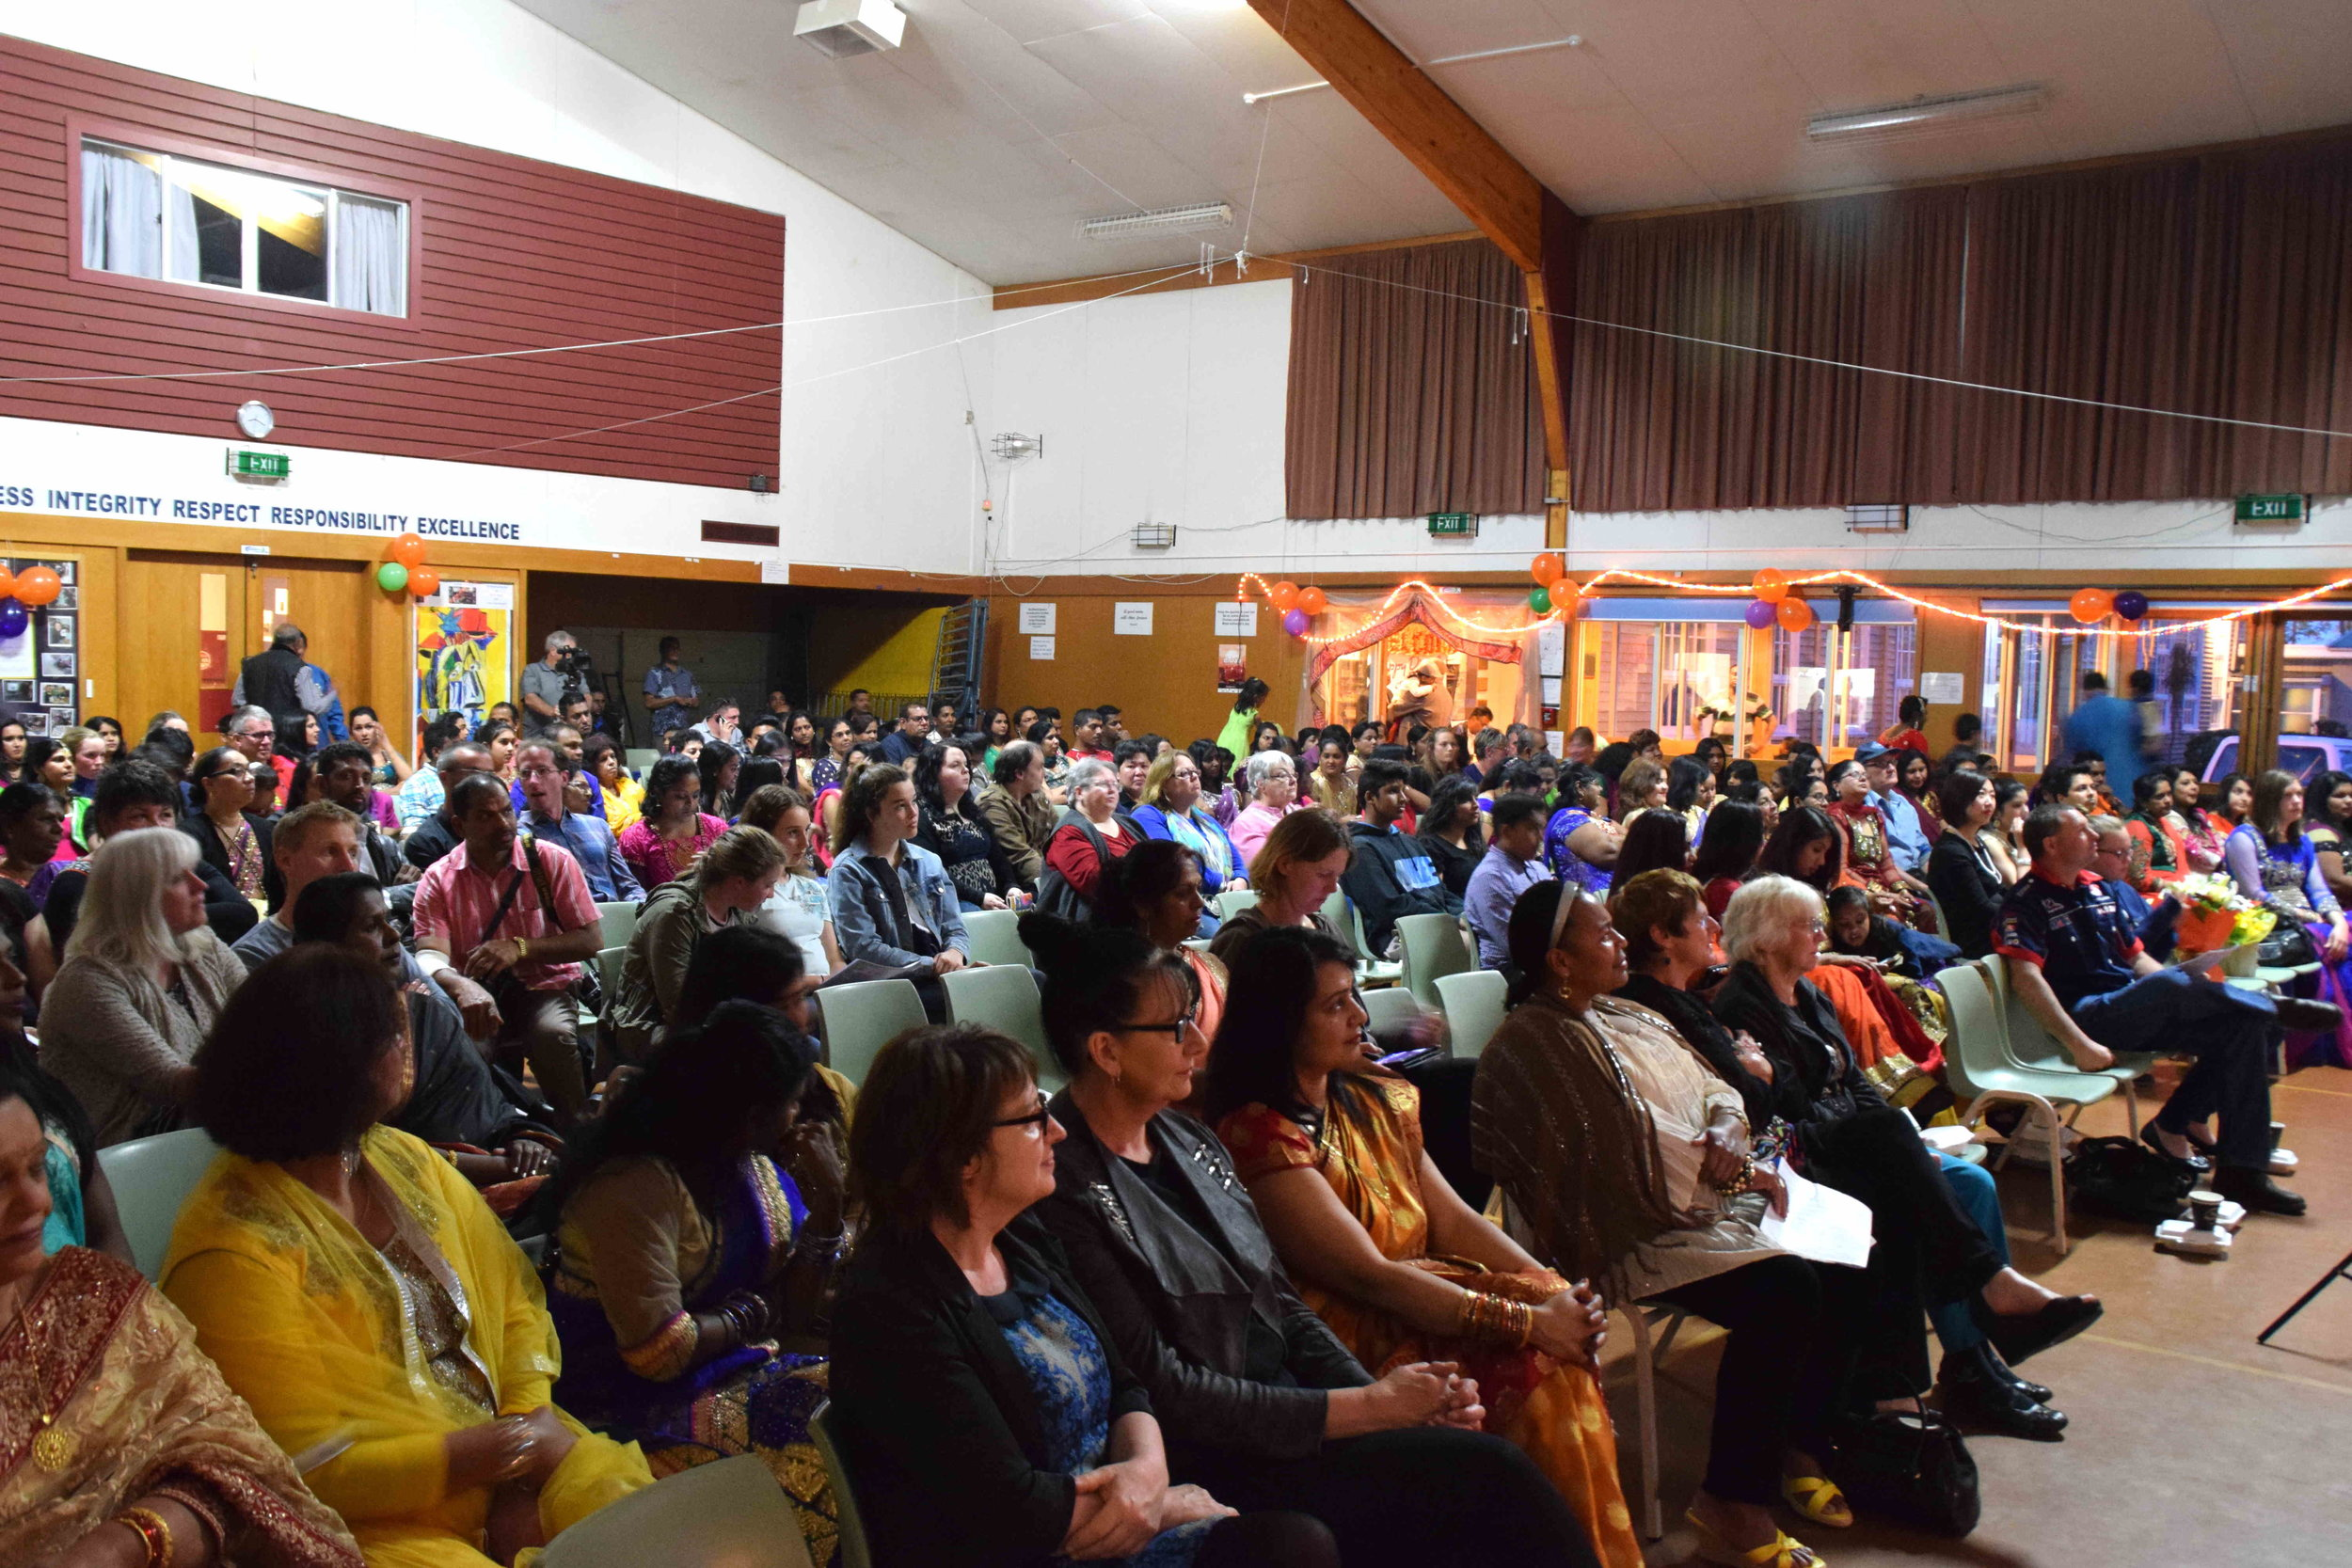 The capacity crowd from all communities was entertained for close to four hours